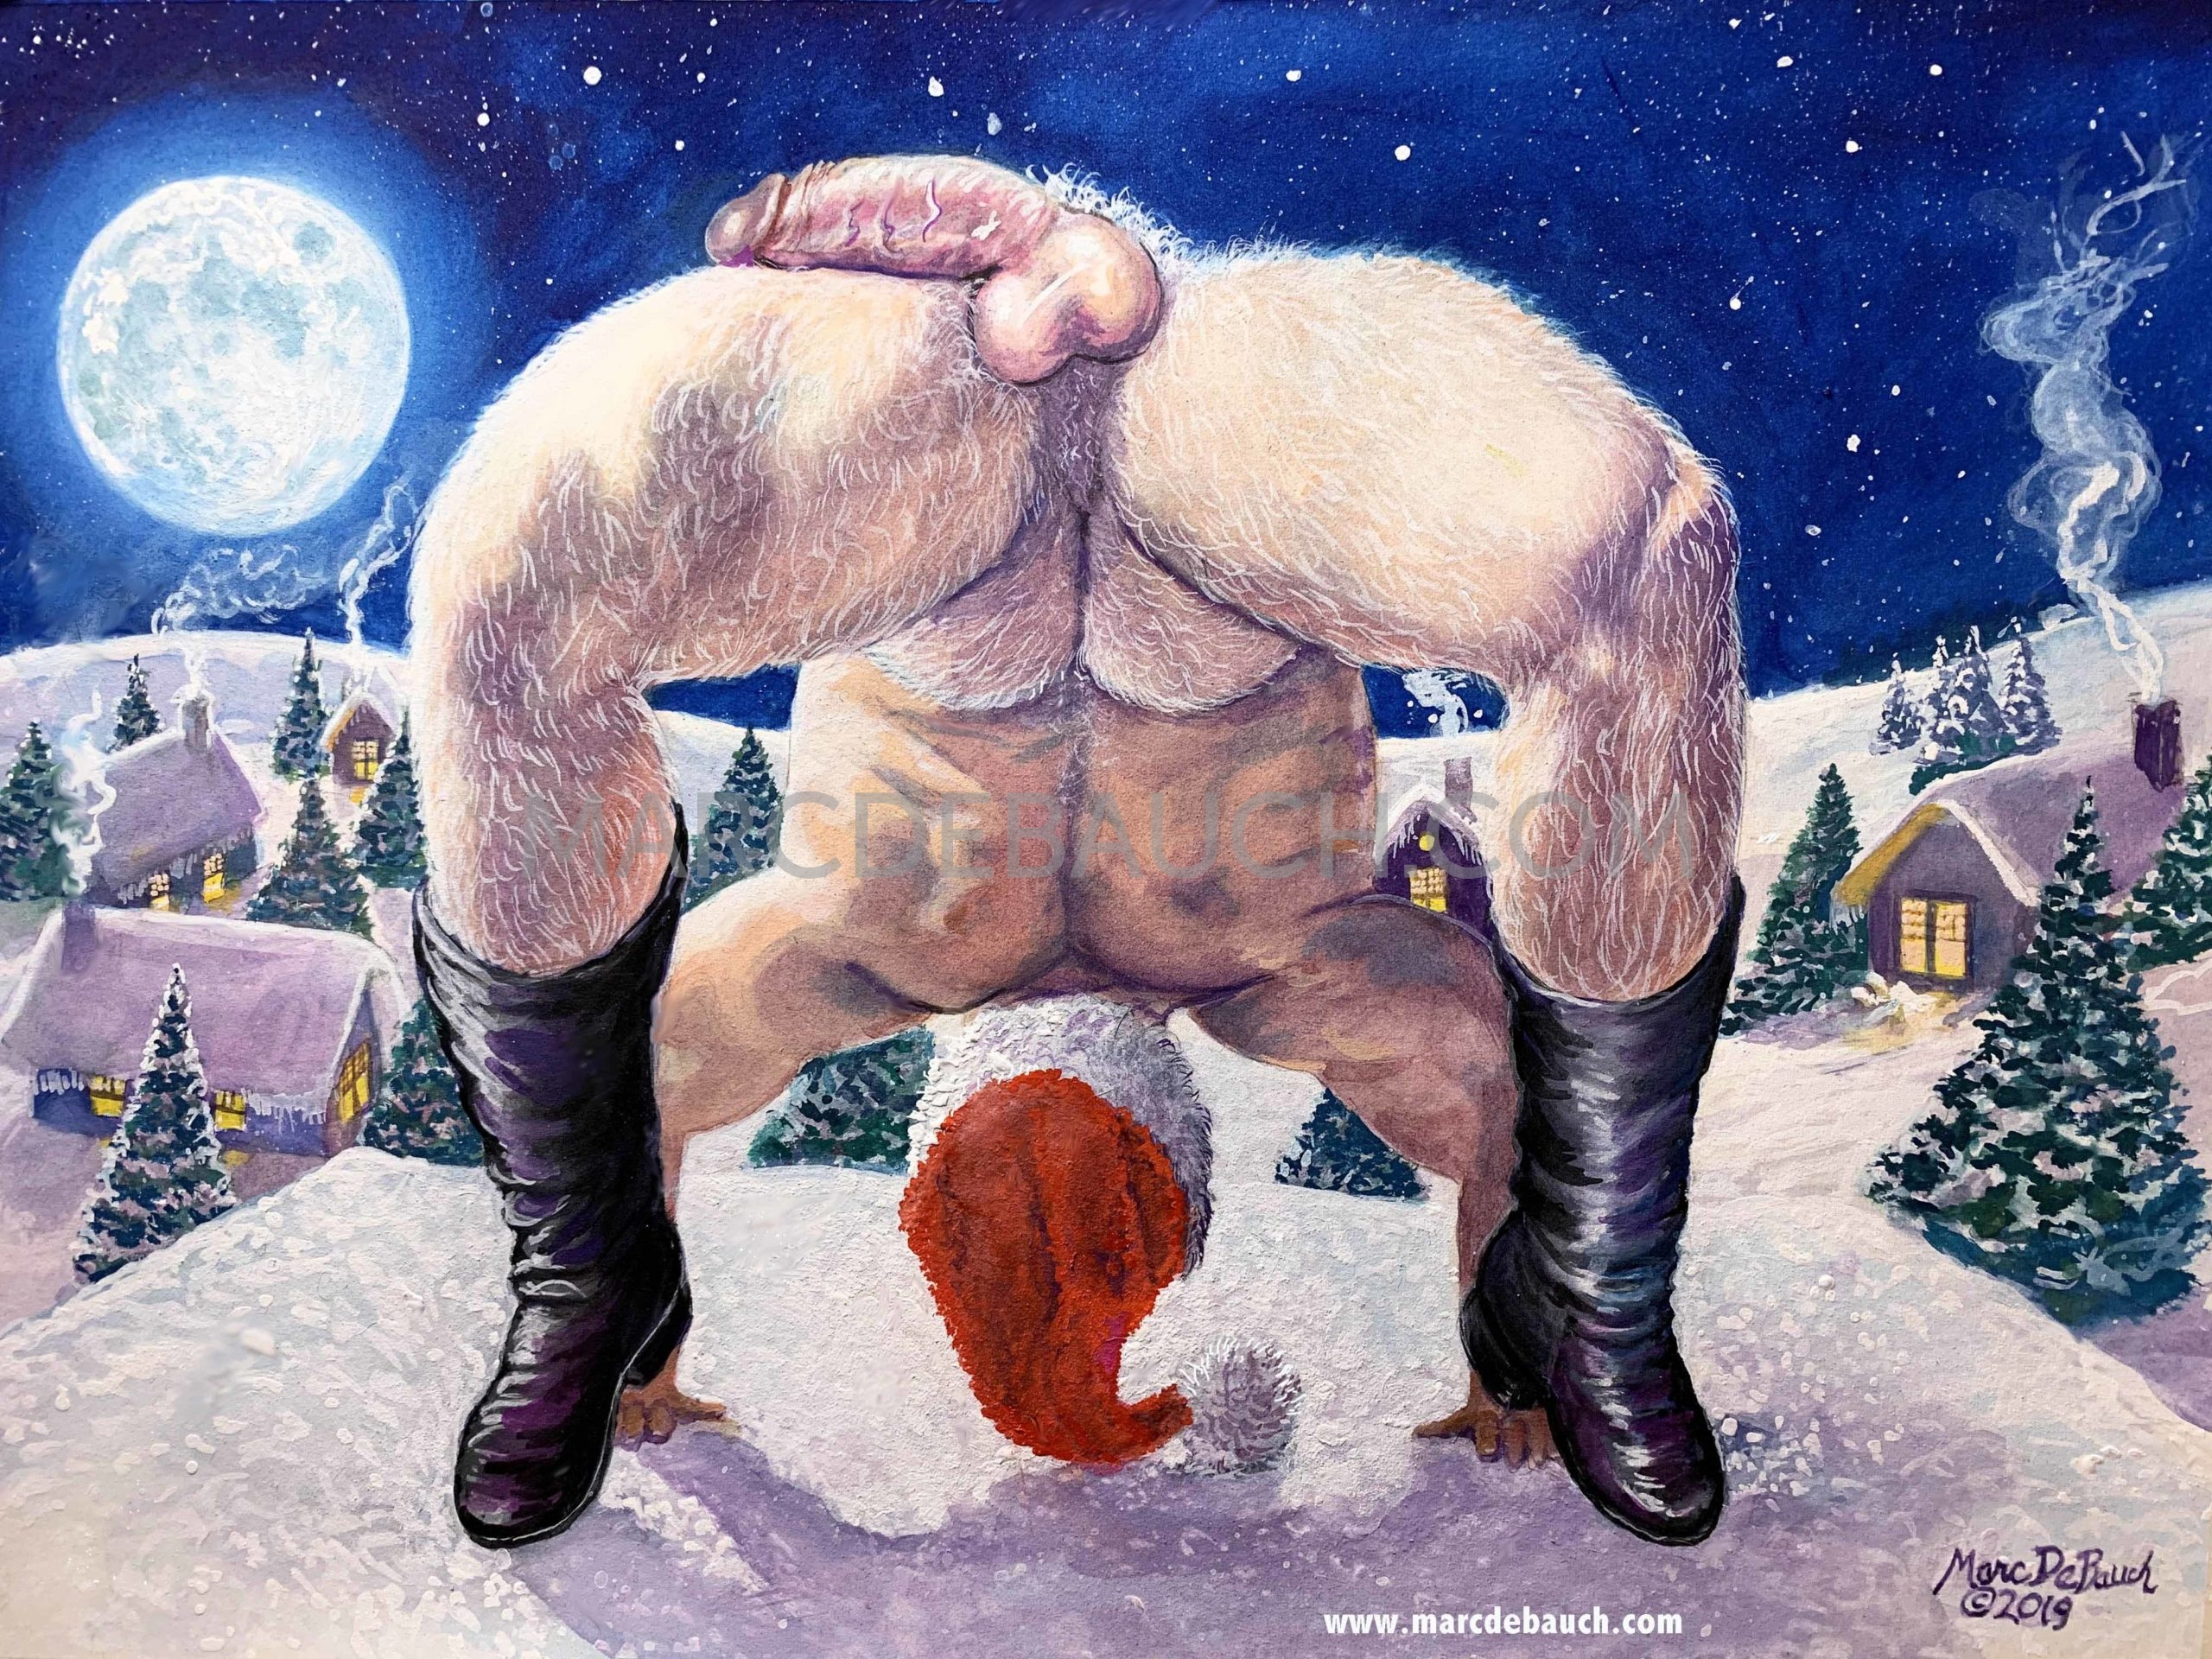 SANTA IS BENDING OVER BACKWARDS TO BRING YOU THE MERRIEST CHRISTMAS